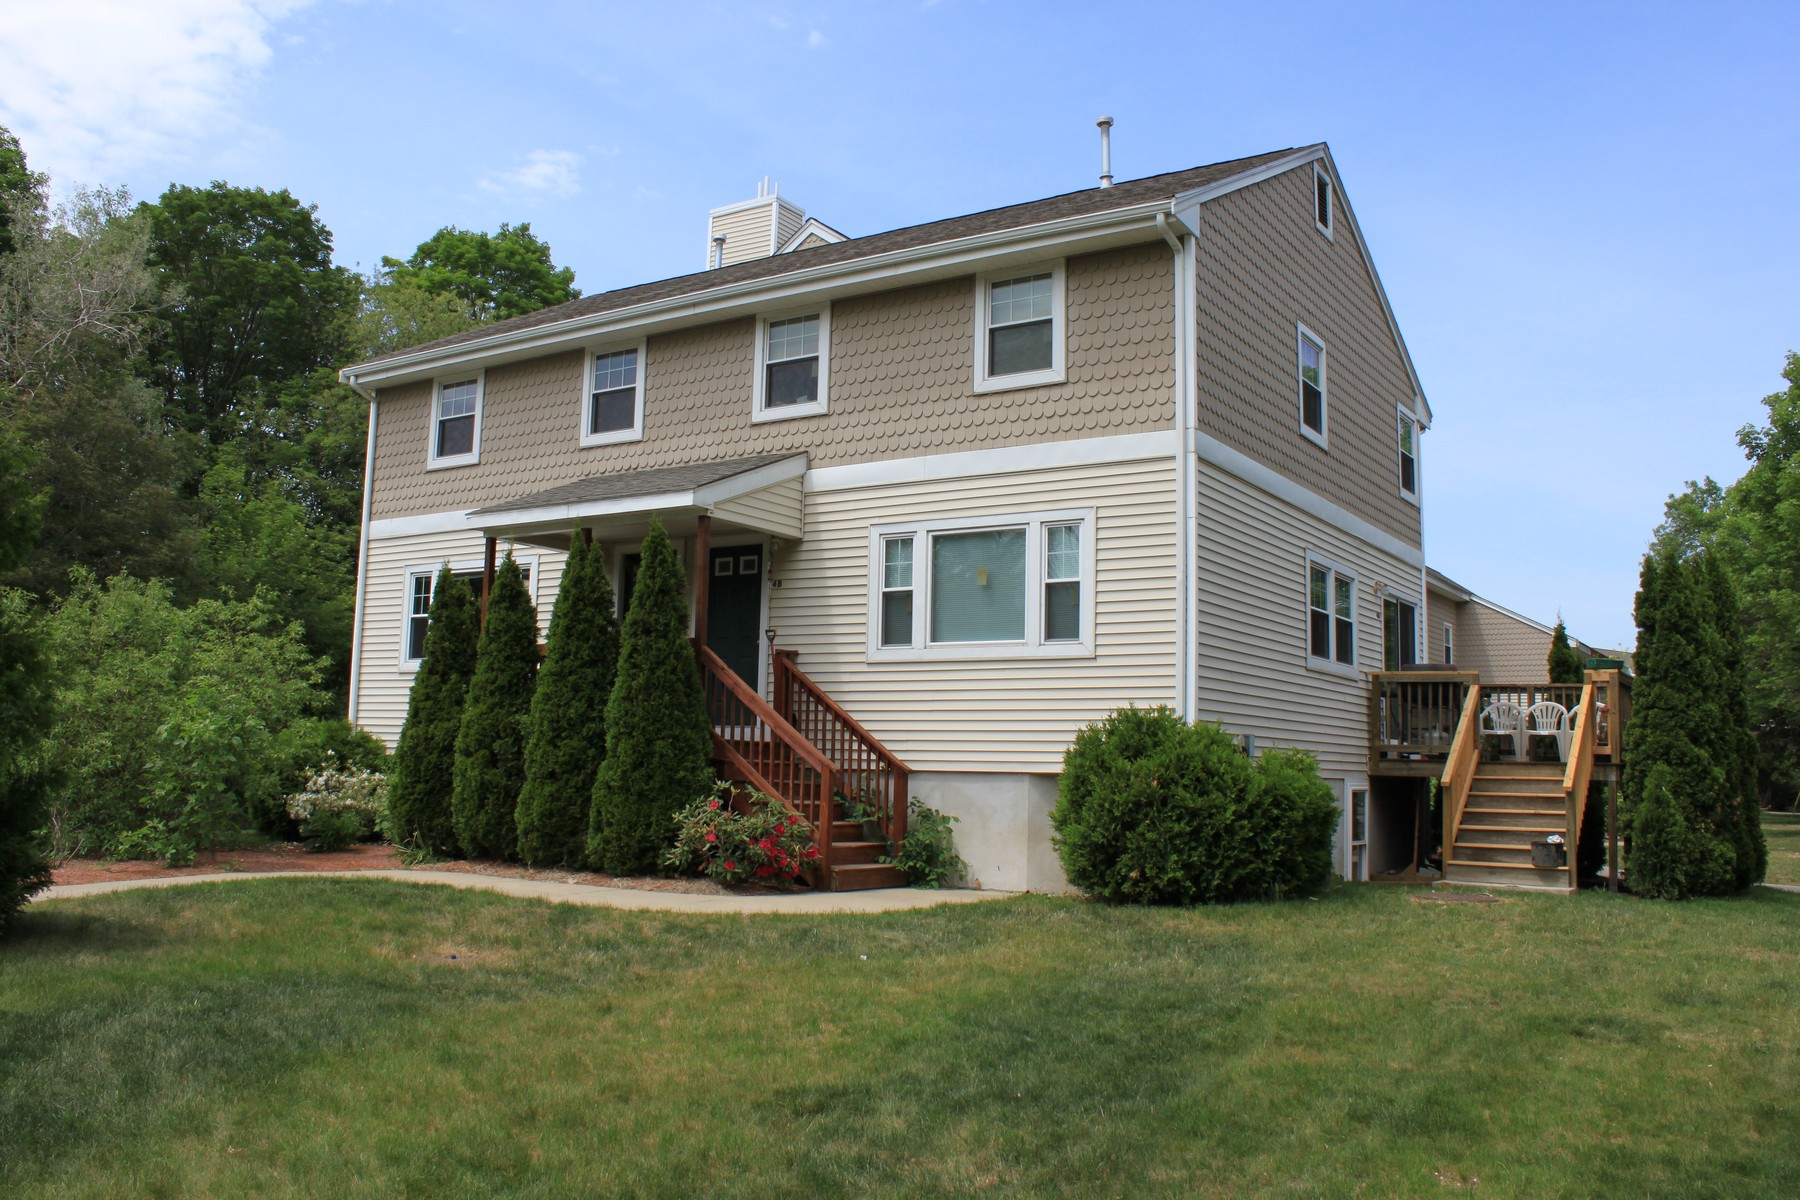 Townhouse for Rent at End Unit Townhouse In A Nice Neighborhood 4A Mayberry Drive Westborough, 01581 United States